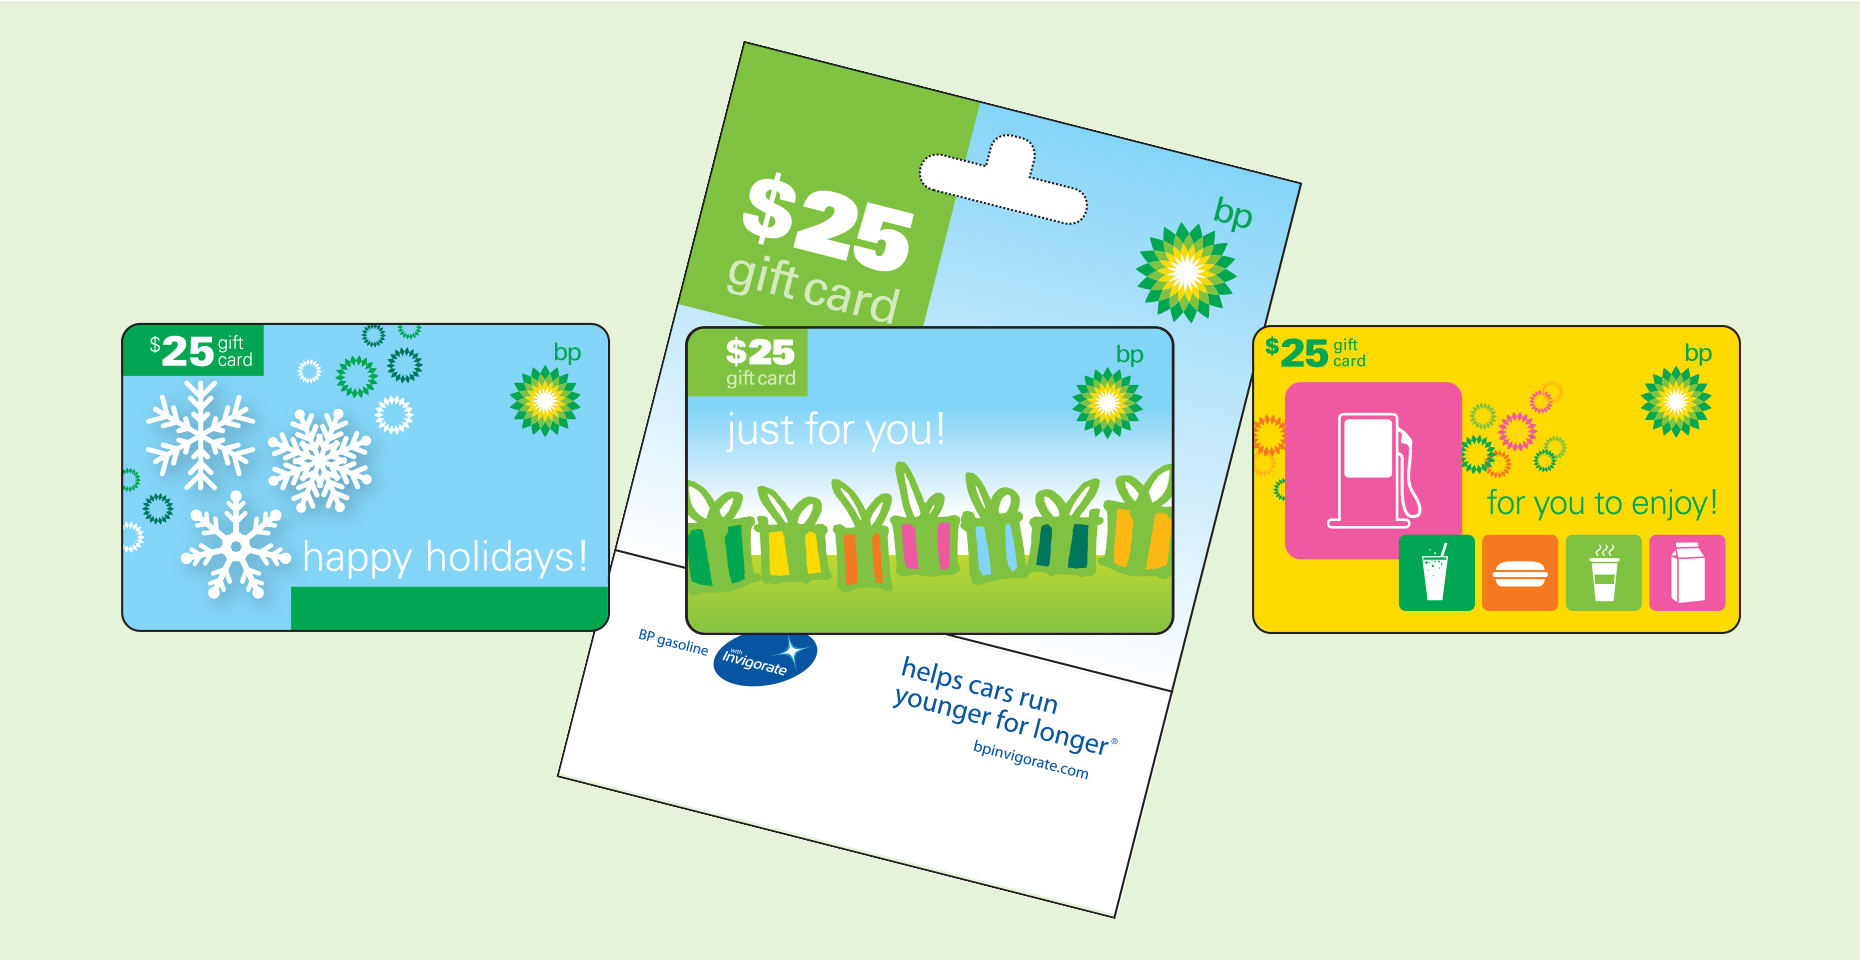 CARD DESIGN: BP Gift Cards